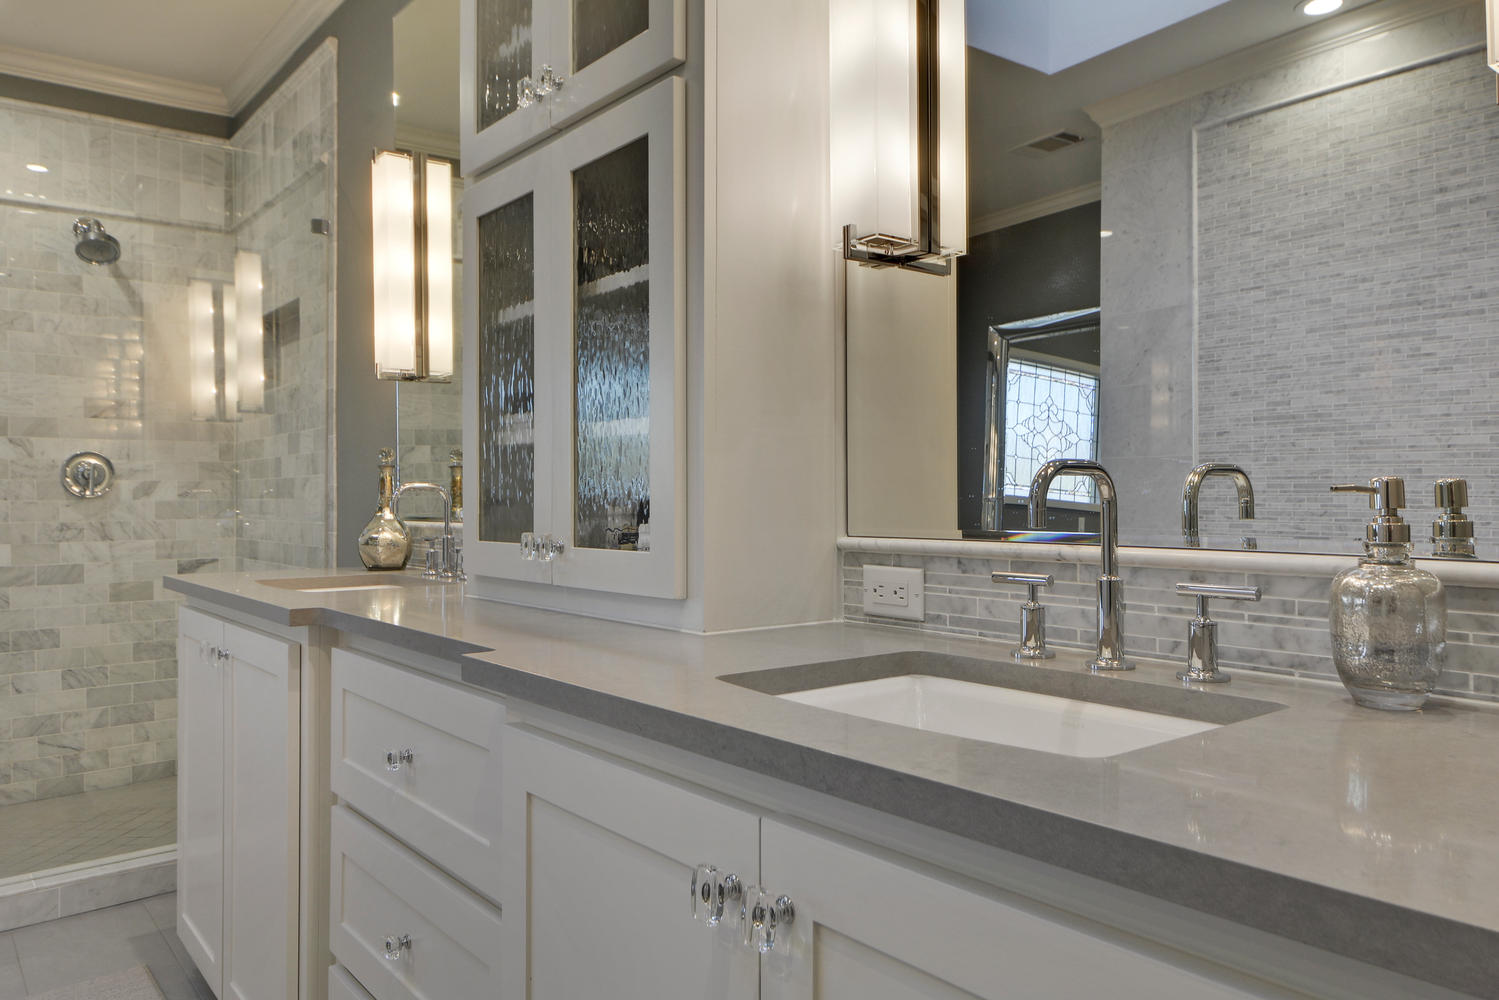 His and hers sinks in transitional bathroom